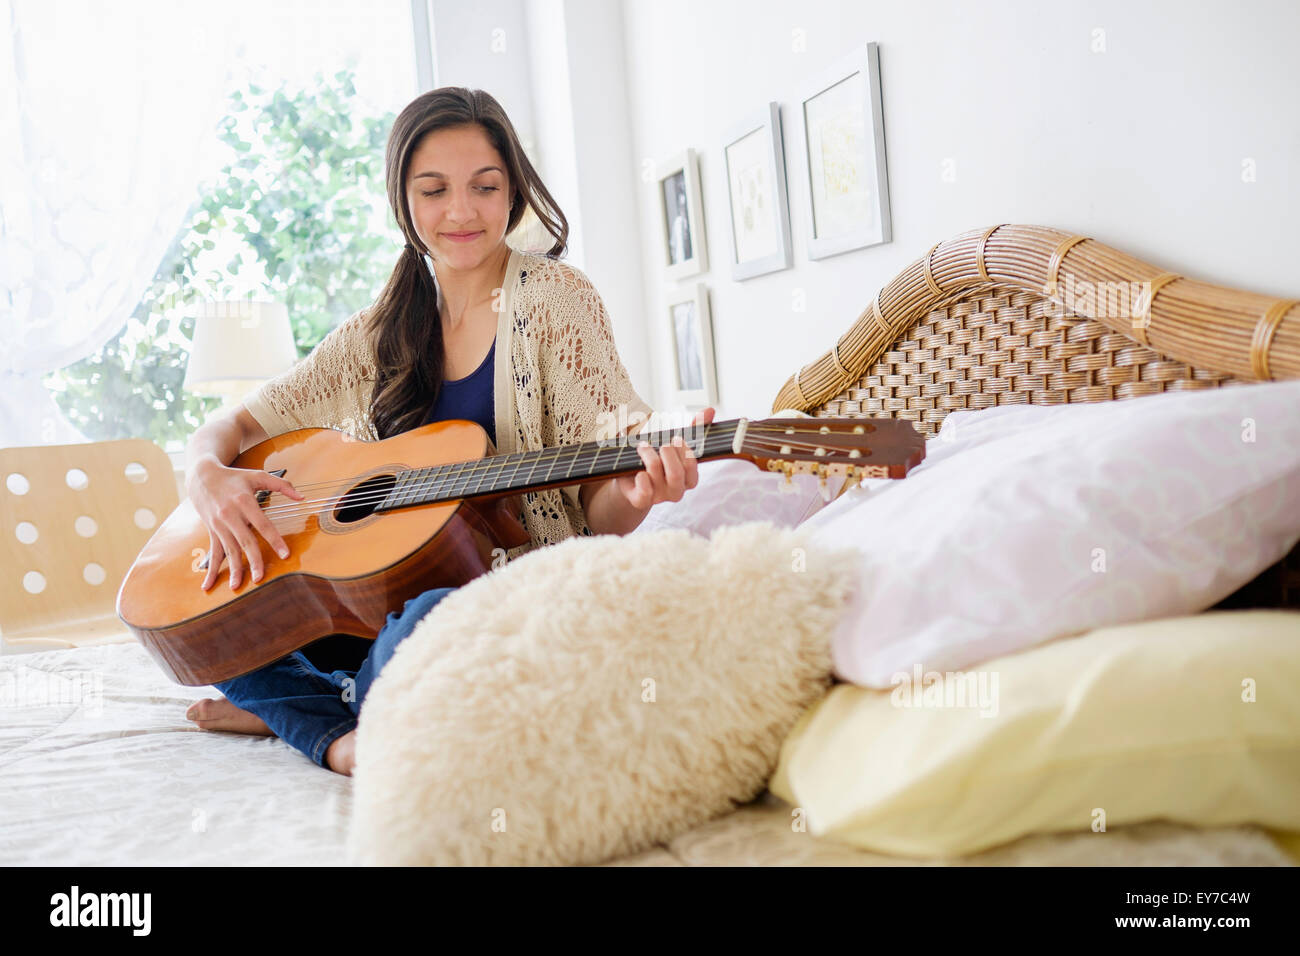 Teenage girl (14-15) playing guitar - Stock Image